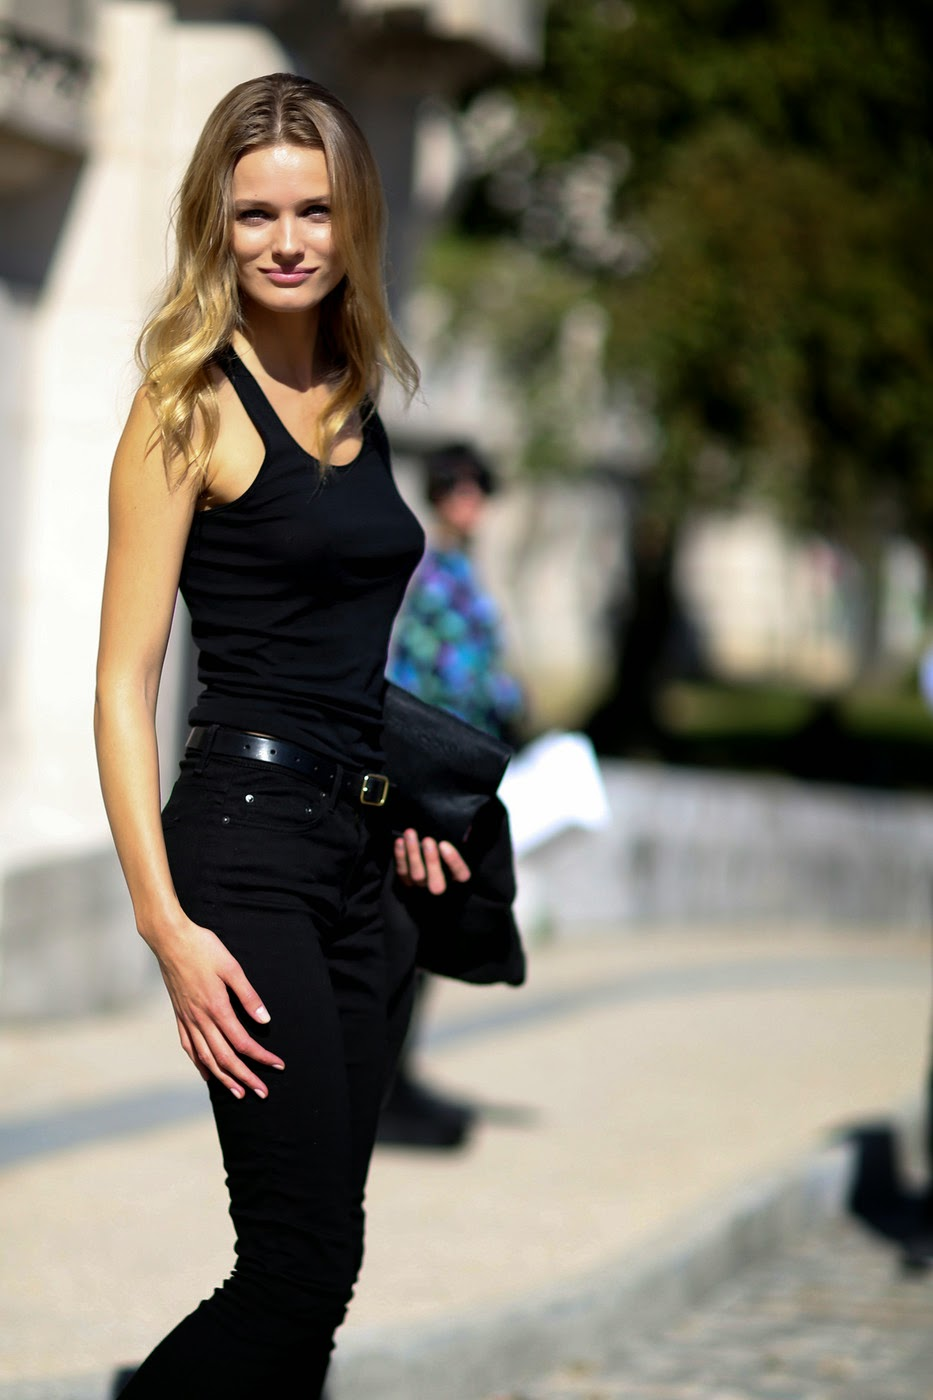 Model Street Style Edita Vilkeviciute 39 S All Black Simple Look The Front Row View